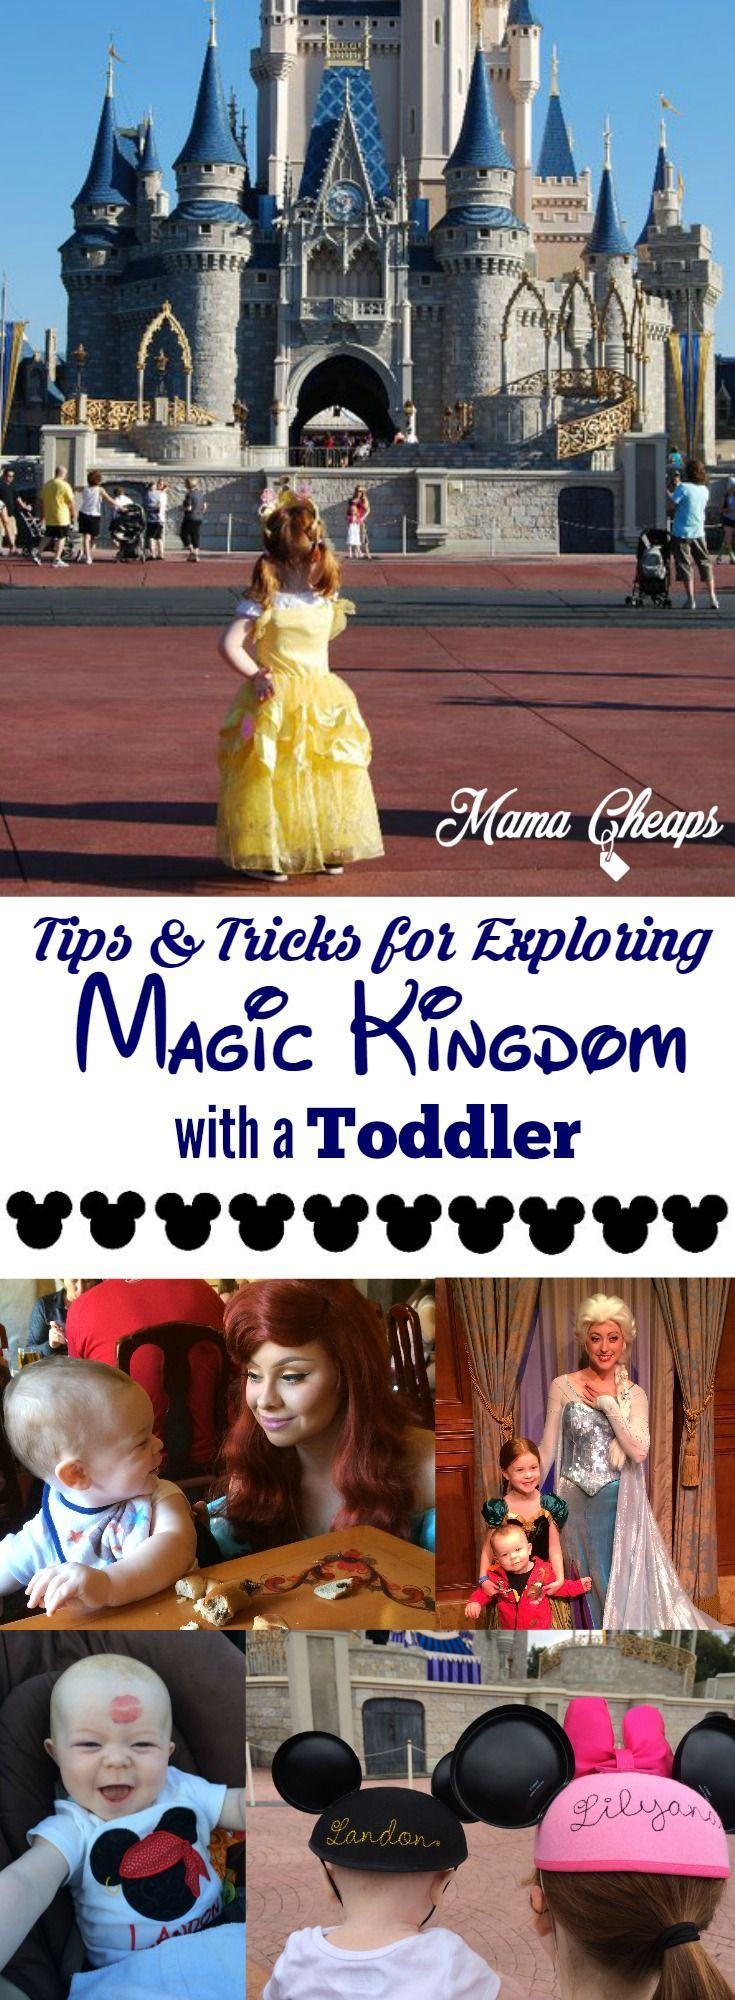 Tips and Tricks for Exploring Disney's Magic Kingdom with a Toddler Find lots of great Disney trip planning info on MamaCheaps.com!